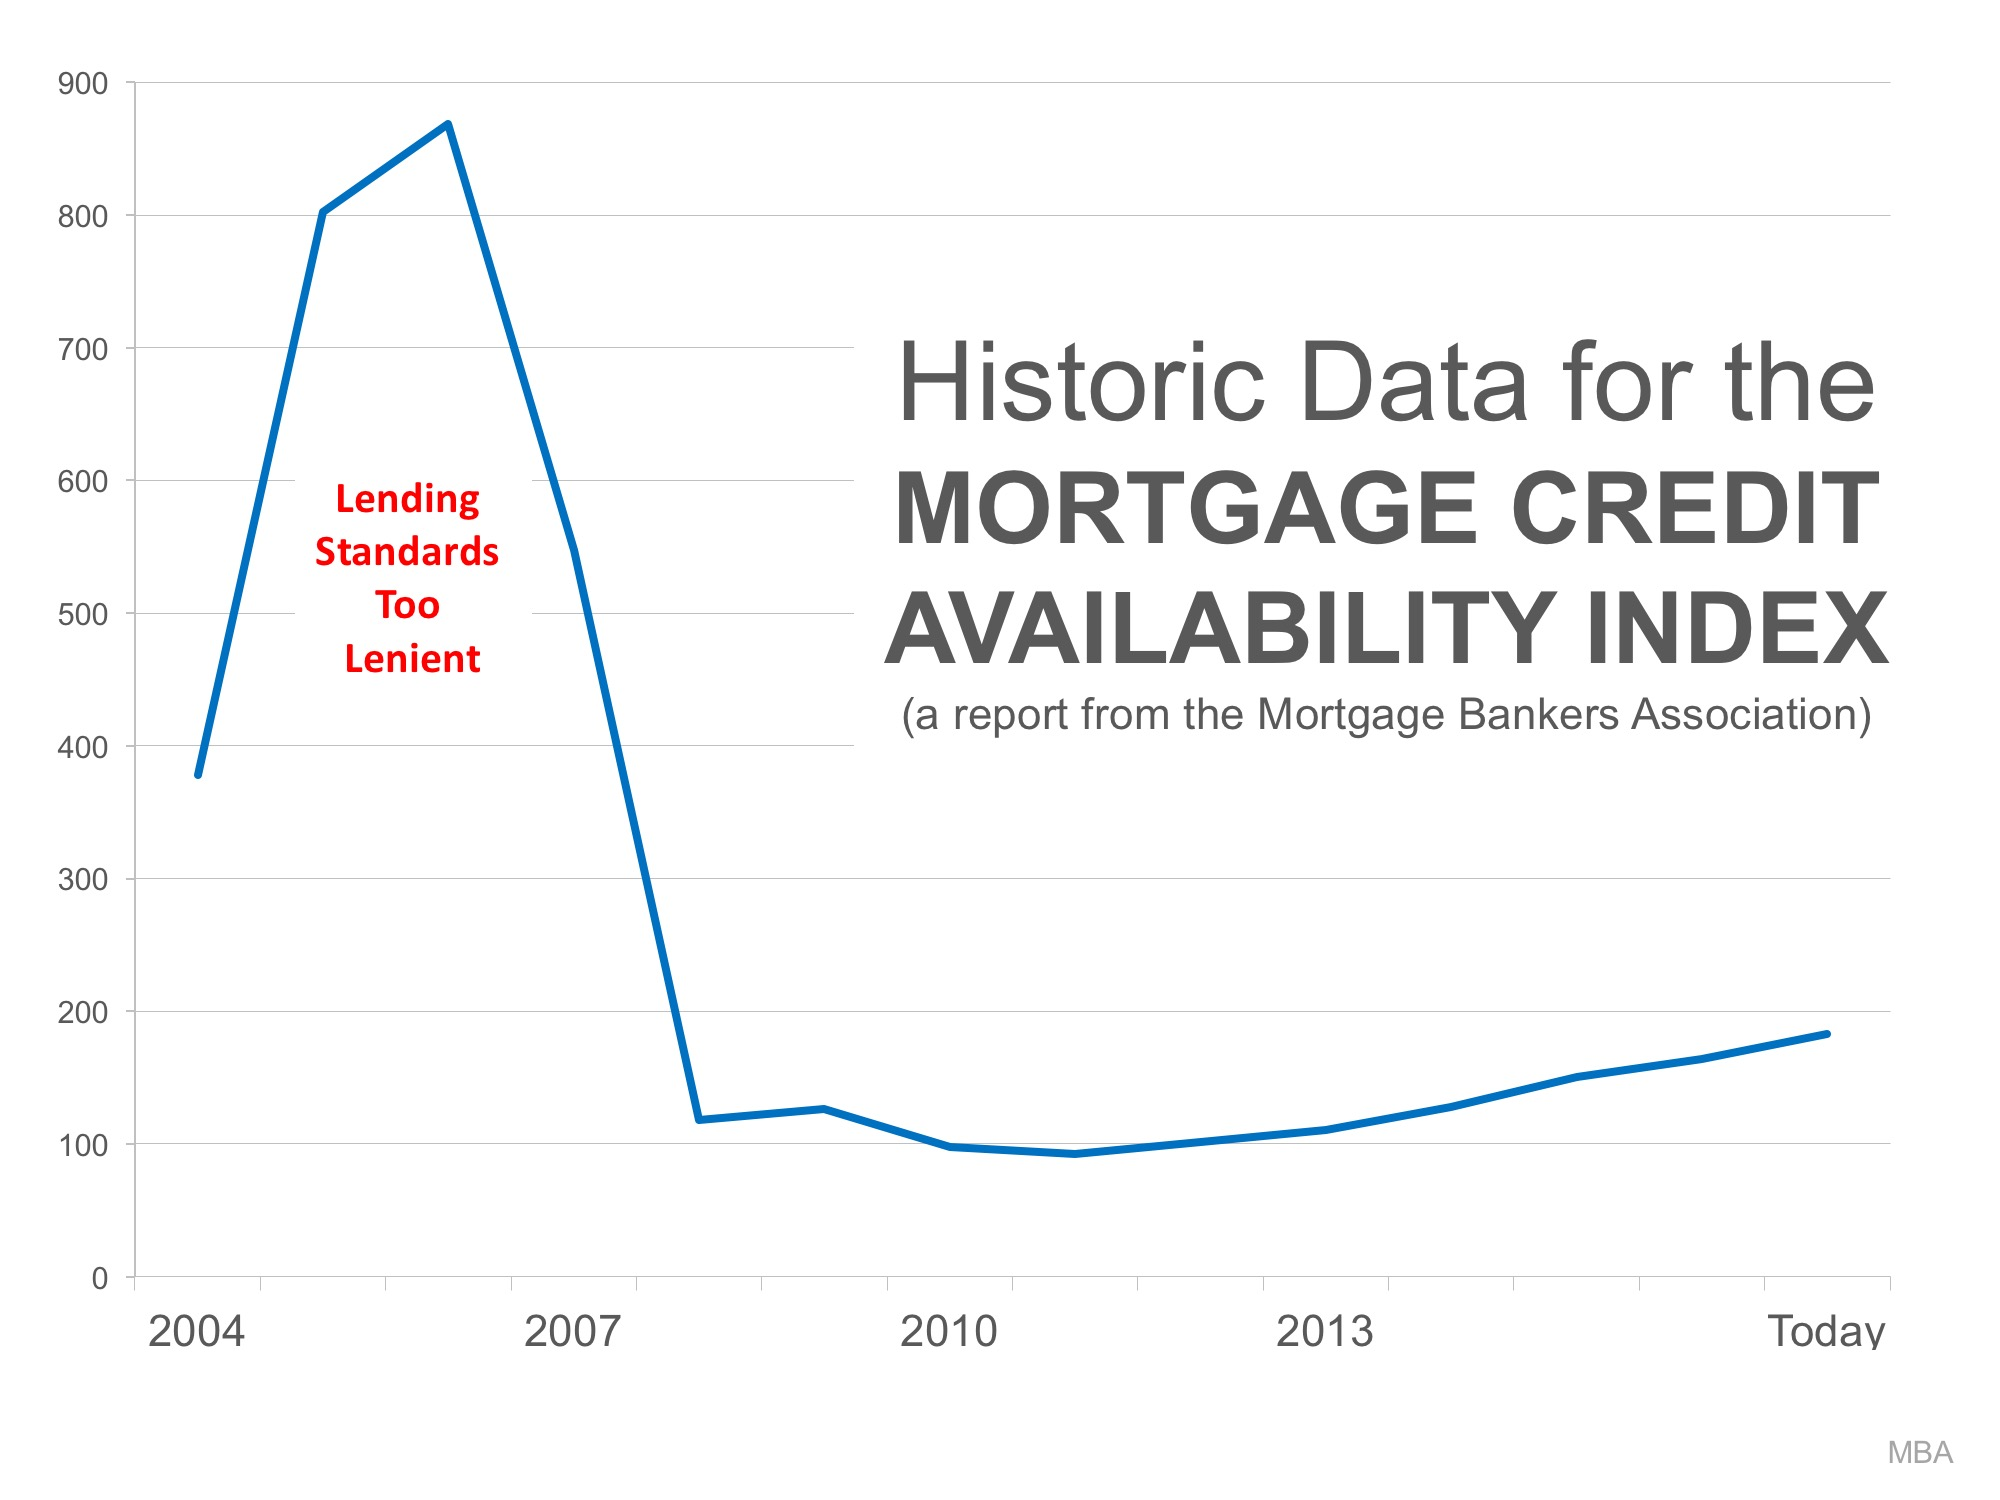 Mortgage credit availability index